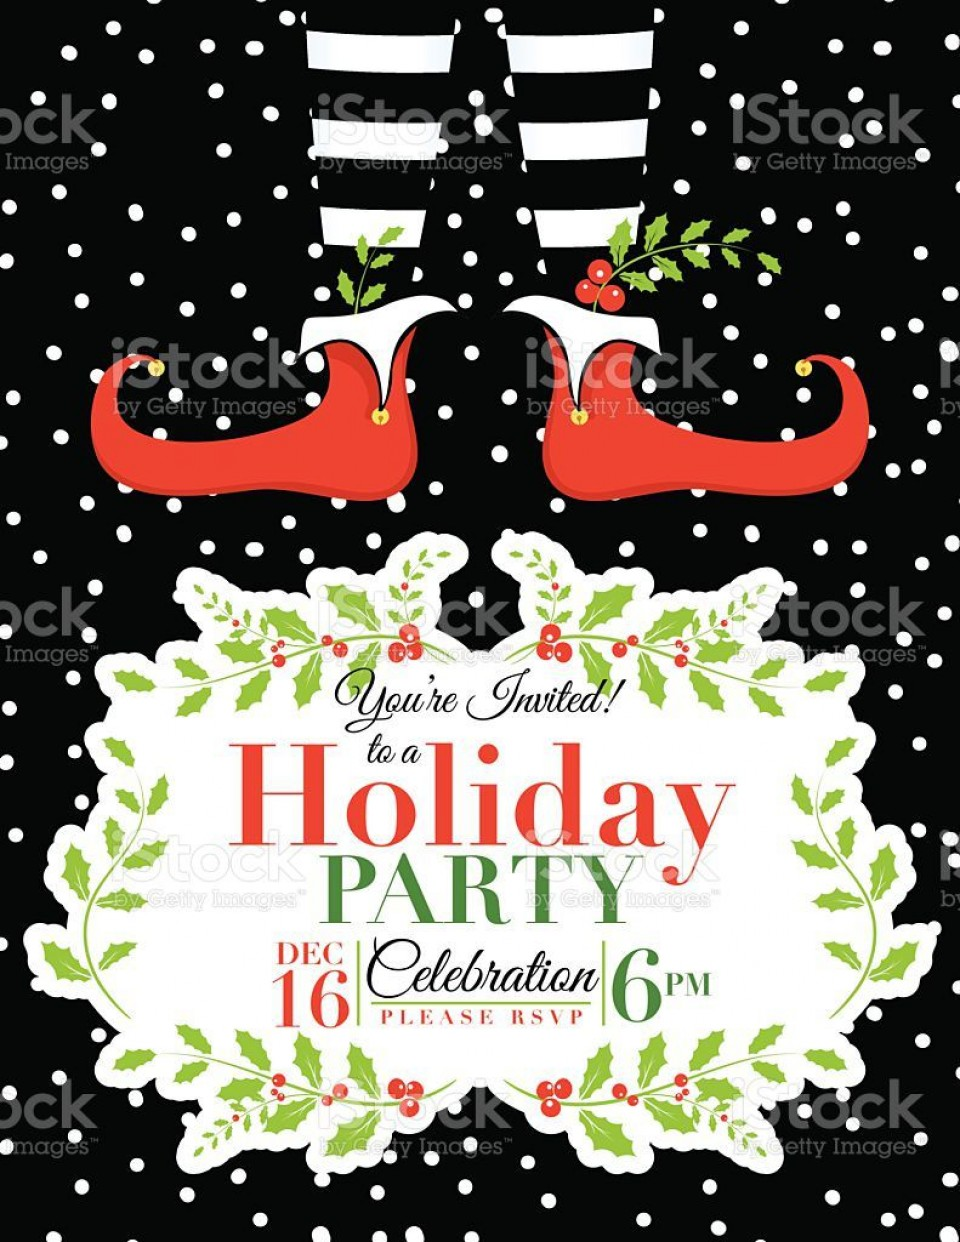 007 Wonderful Holiday Party Invitation Template Free Example  Elegant Christma Download Dinner Printable Australia960